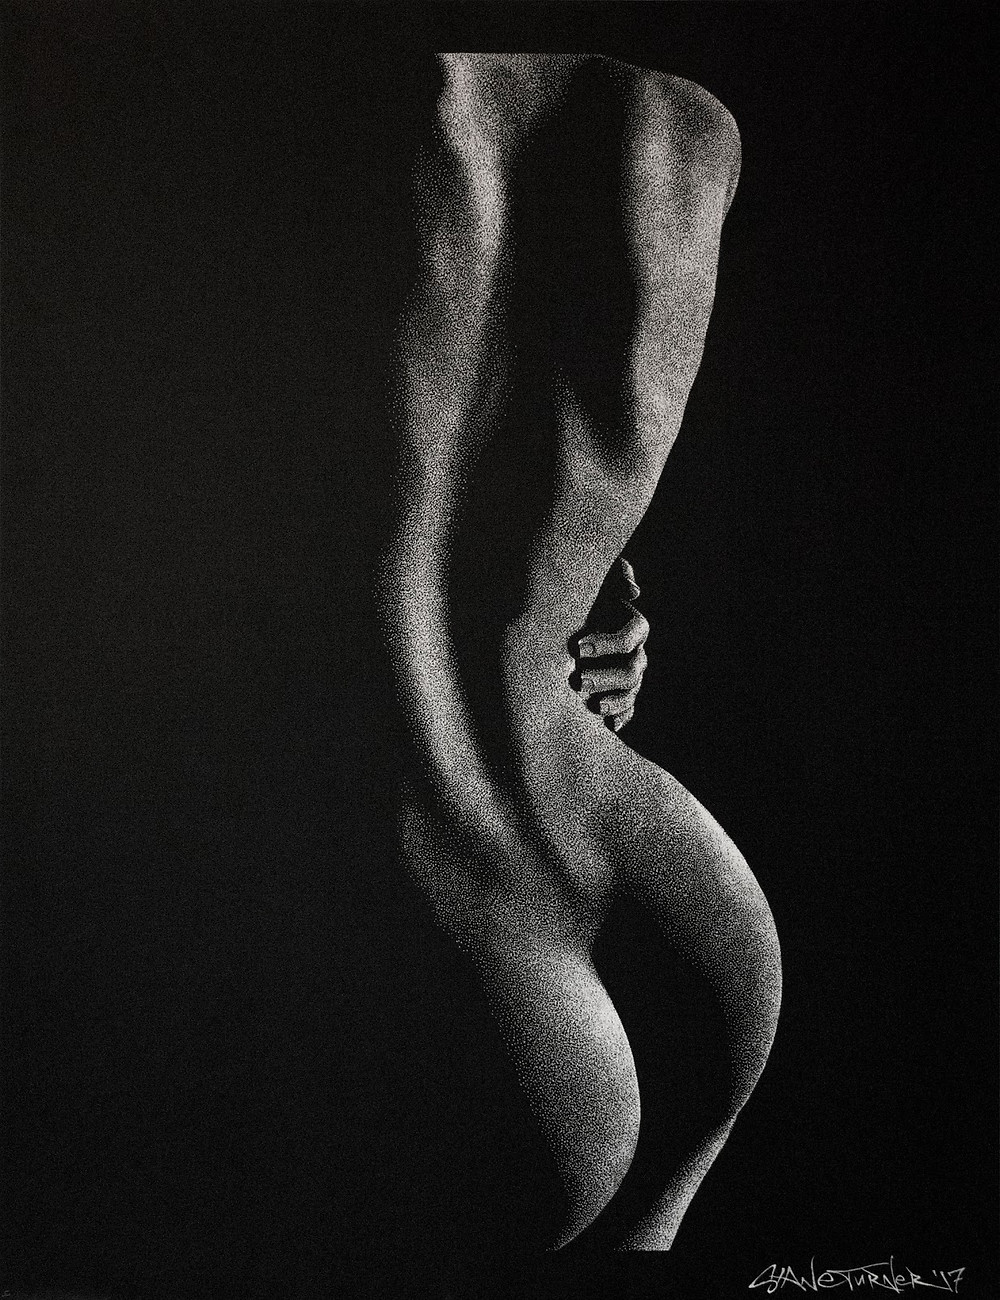 Out of the Shadows 4.0 by Shane Turner. Pointillism dot drawing of artistic nude bodyscape. Standing backside of female figure in black and white created out of dimensional light and negative space. Female figure in white ink on black paper.